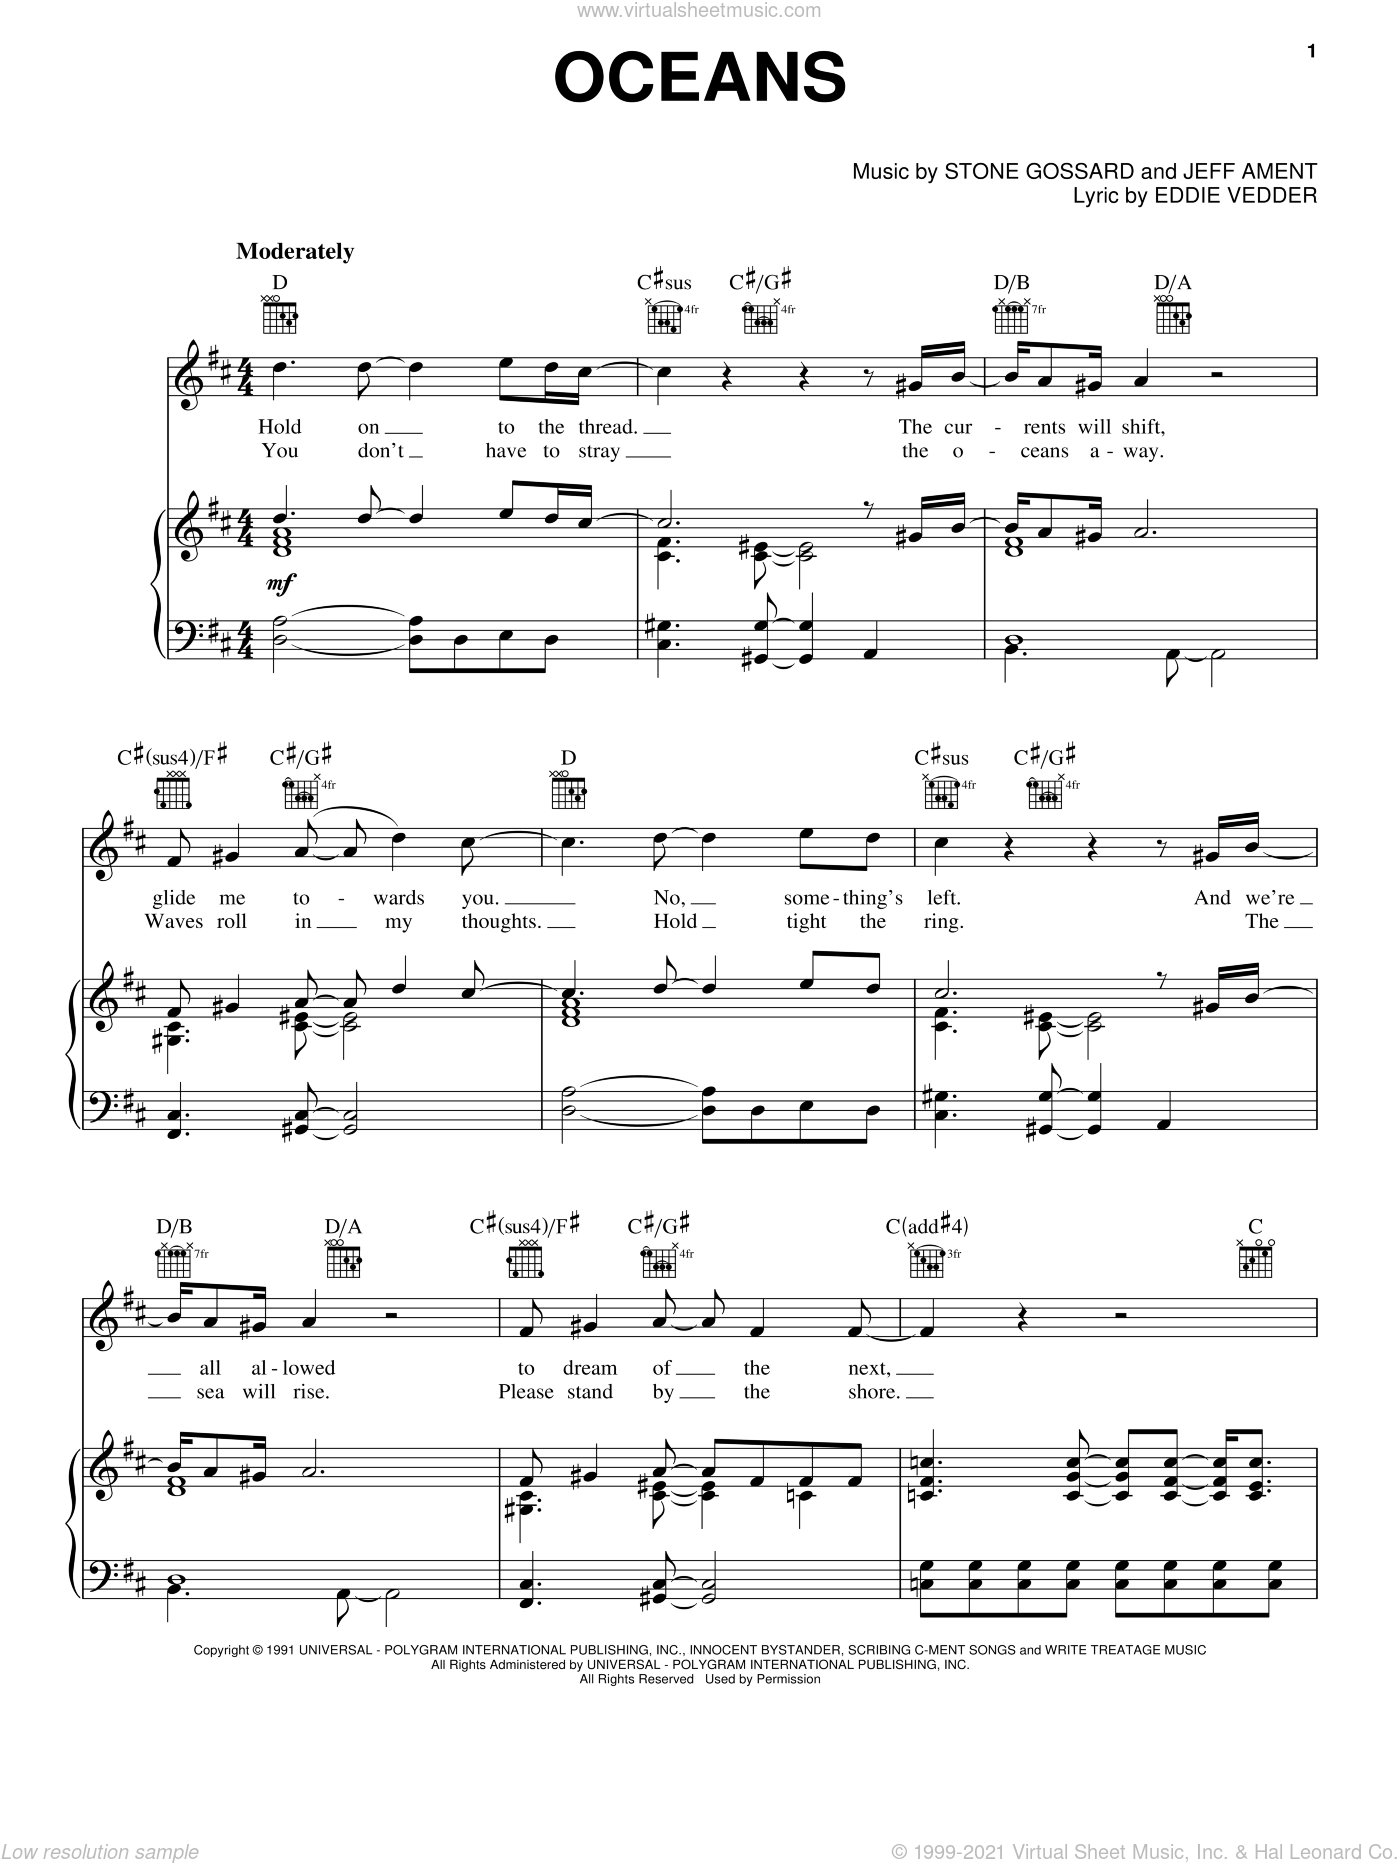 Oceans sheet music for voice, piano or guitar by Stone Gossard, Pearl Jam, Eddie Vedder and Jeff Ament. Score Image Preview.